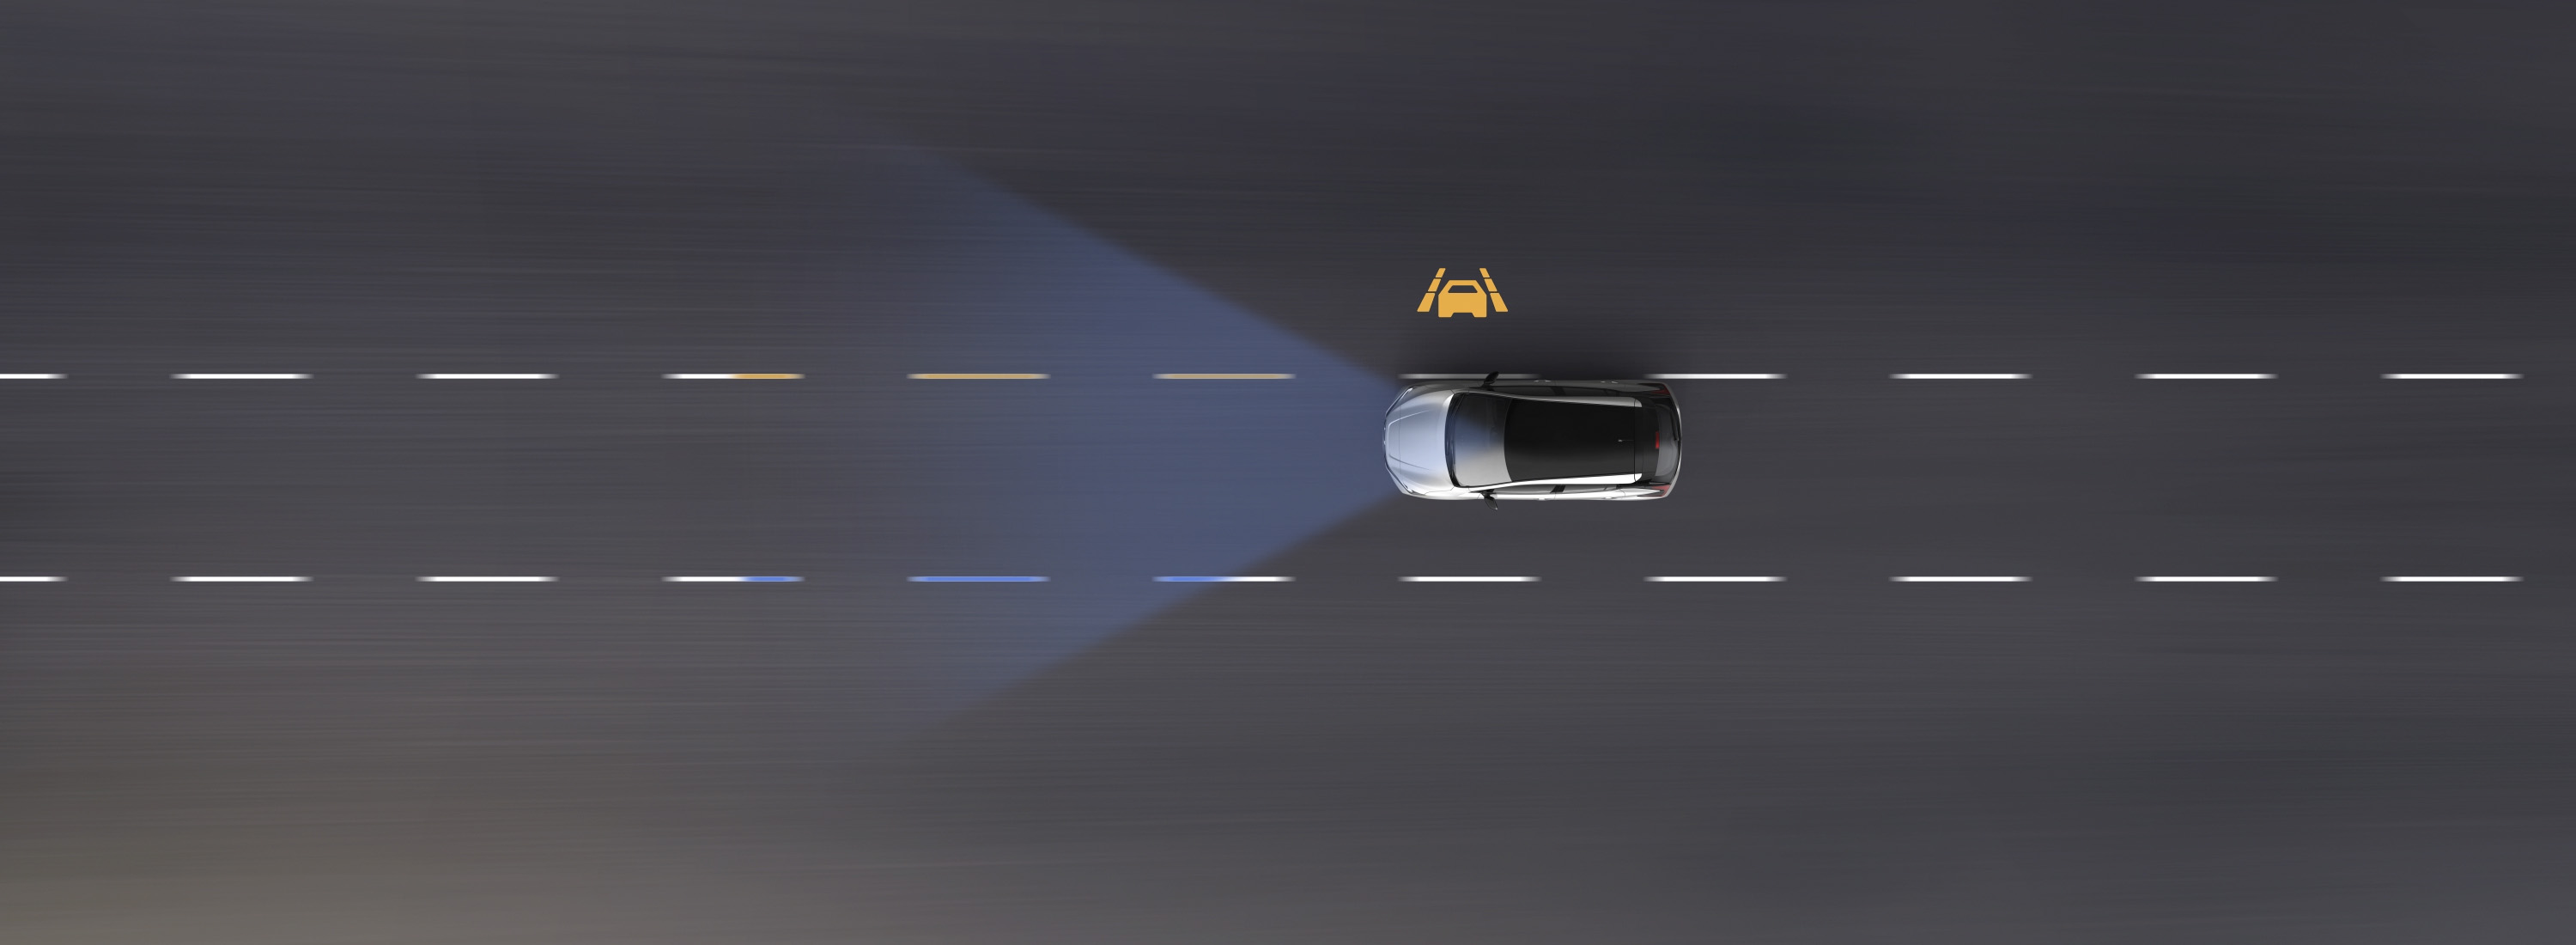 New Nissan LEAF Intelligent Lane Intervention animation